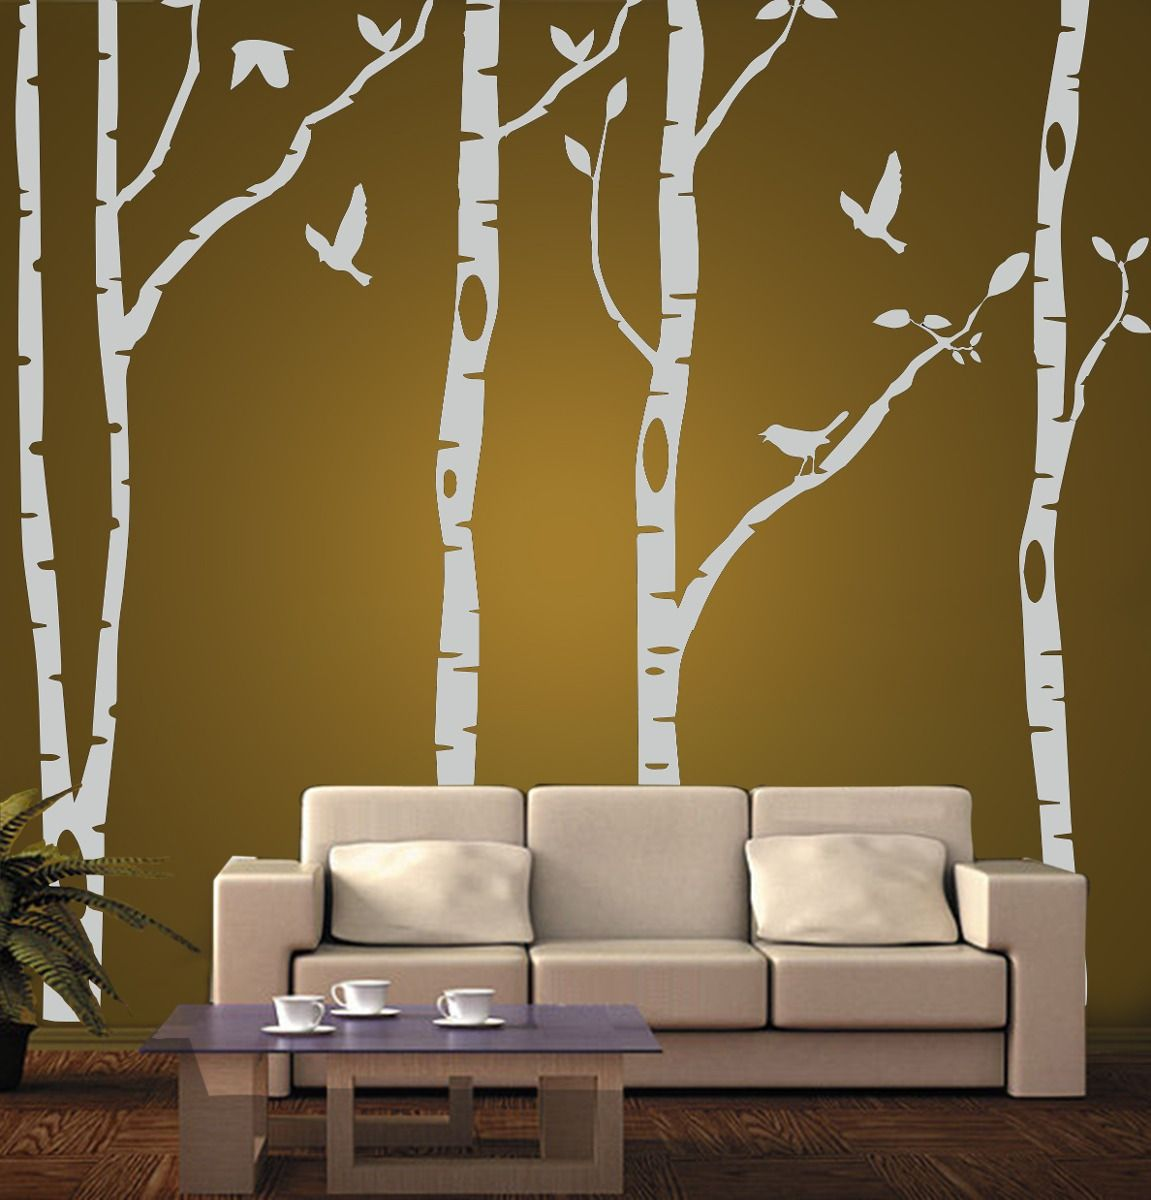 25 best ideas about vinilos de arboles on pinterest for Murales para pared